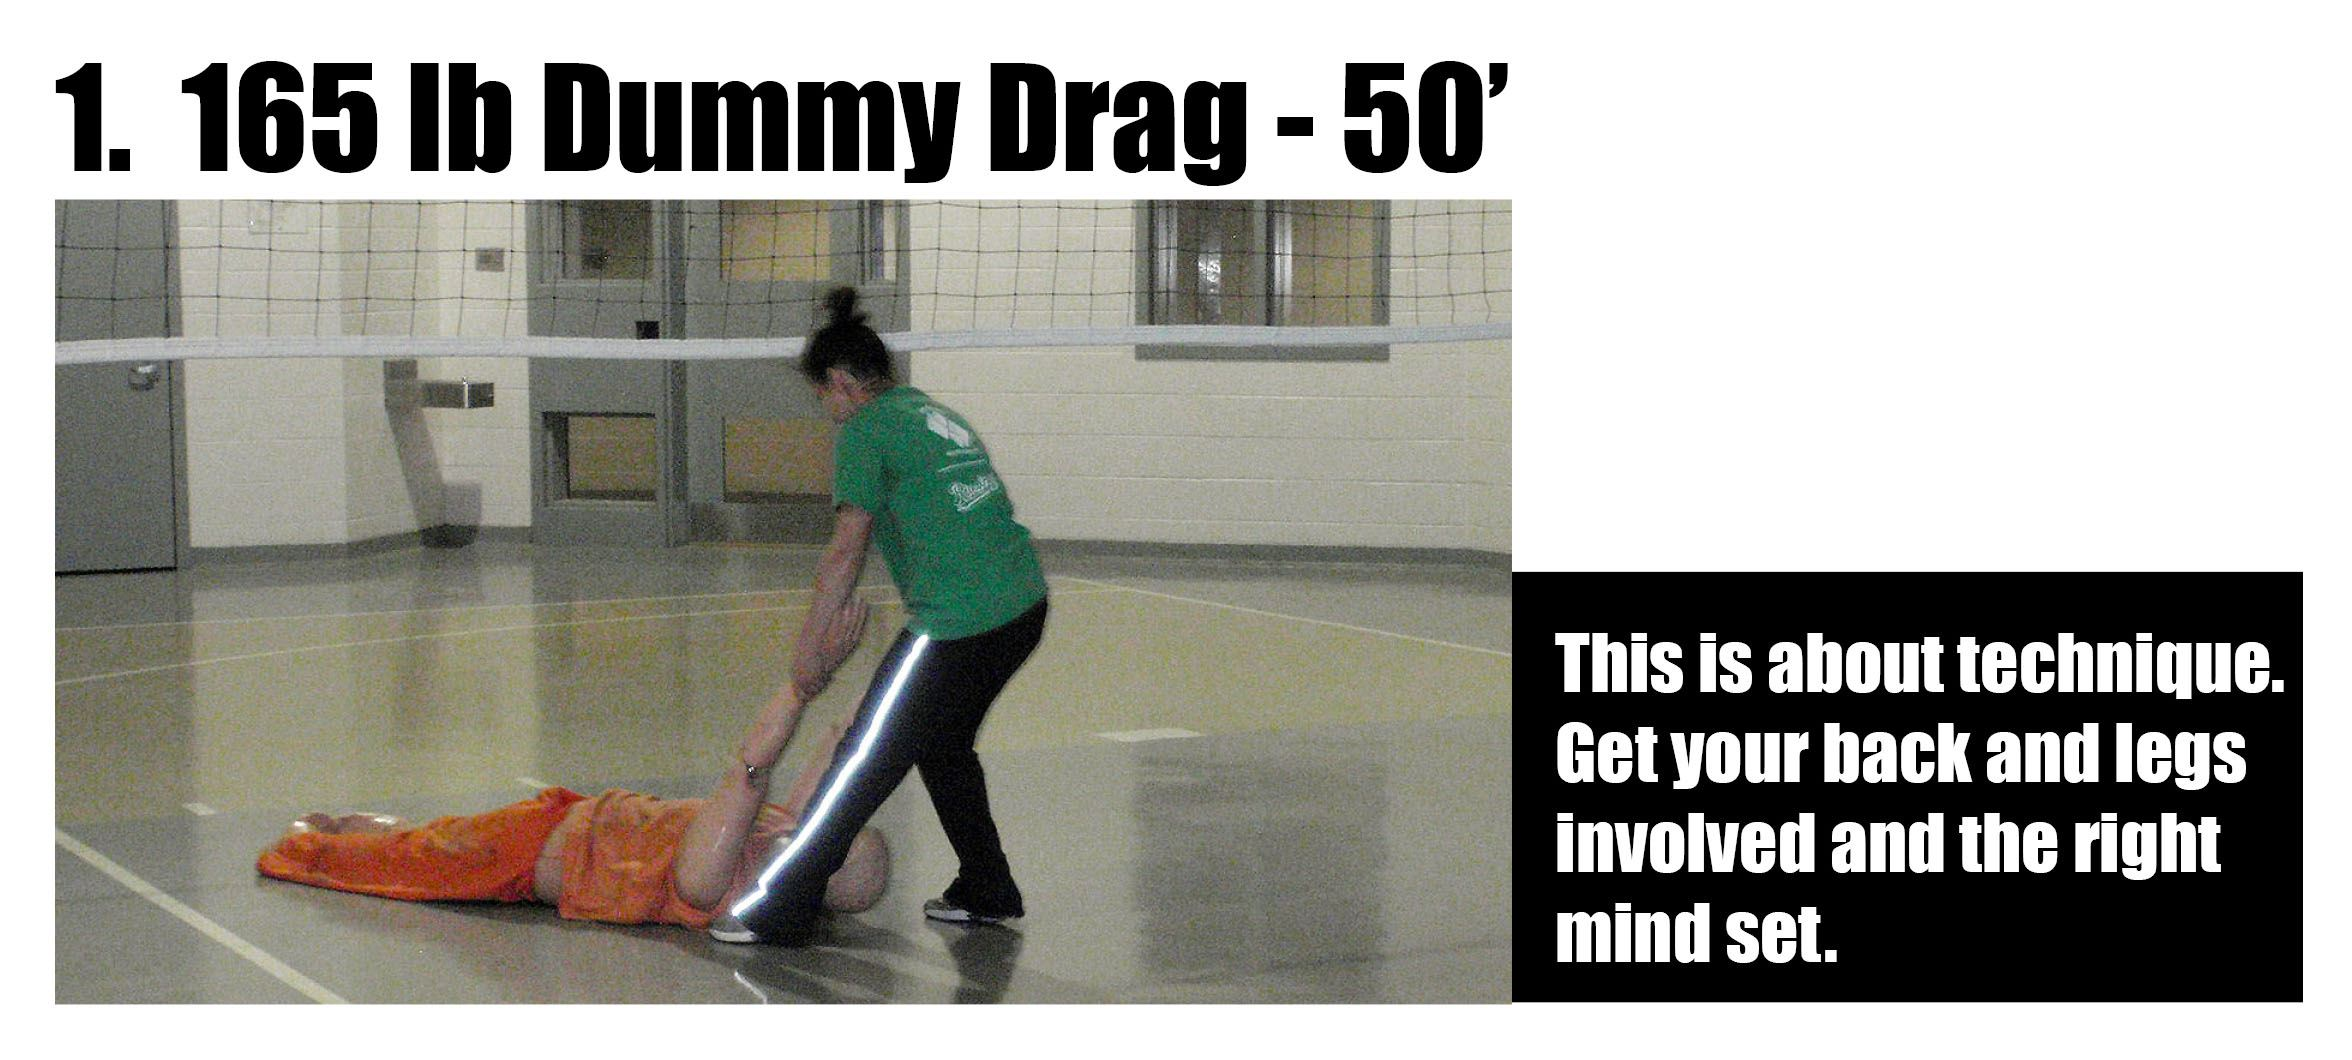 Woman Dragging Dummy Across Gym Floor